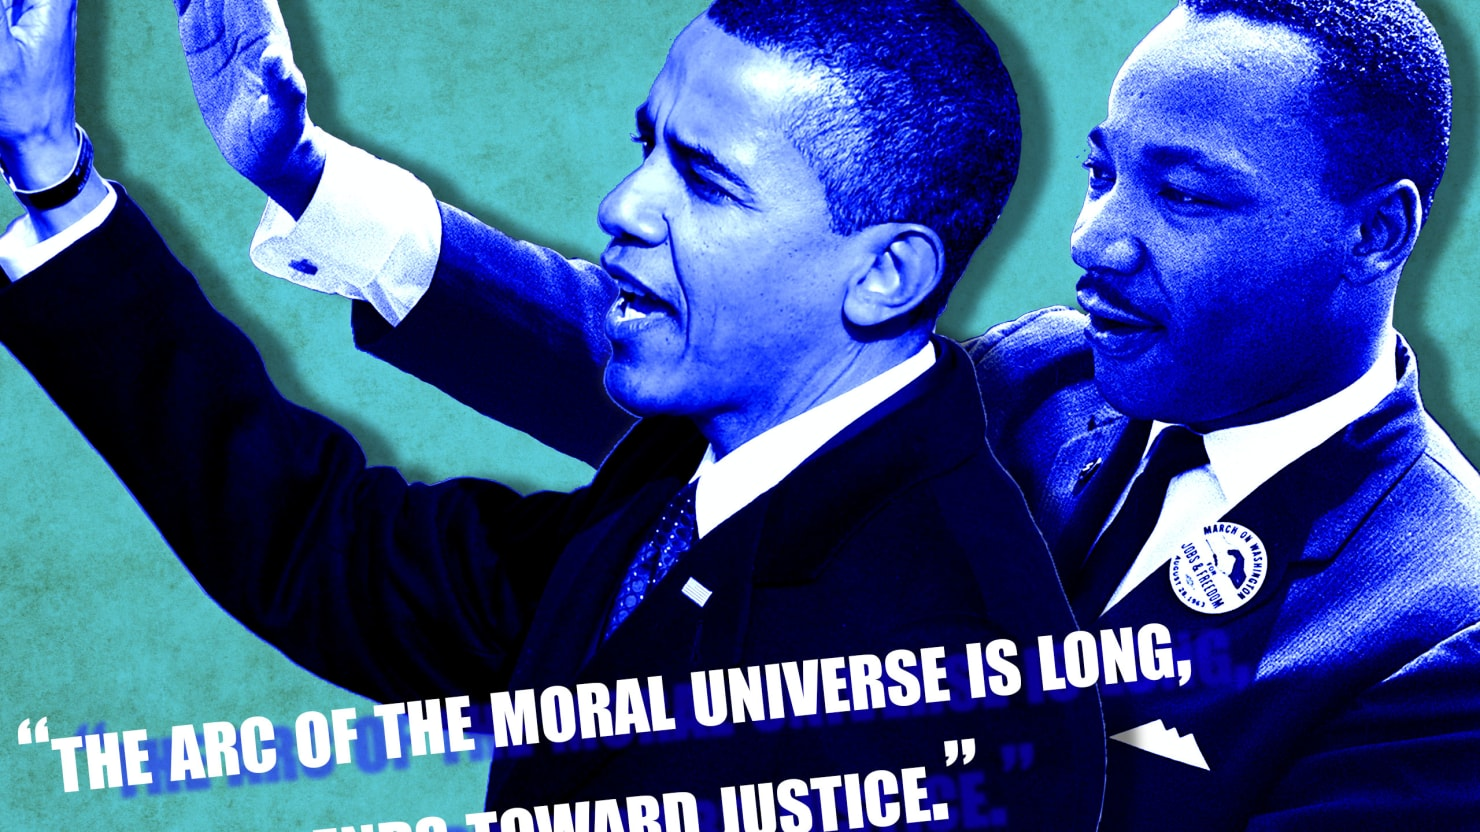 Obama Loves Martin Luther Kings Great Quotebut He Uses It Incorrectly